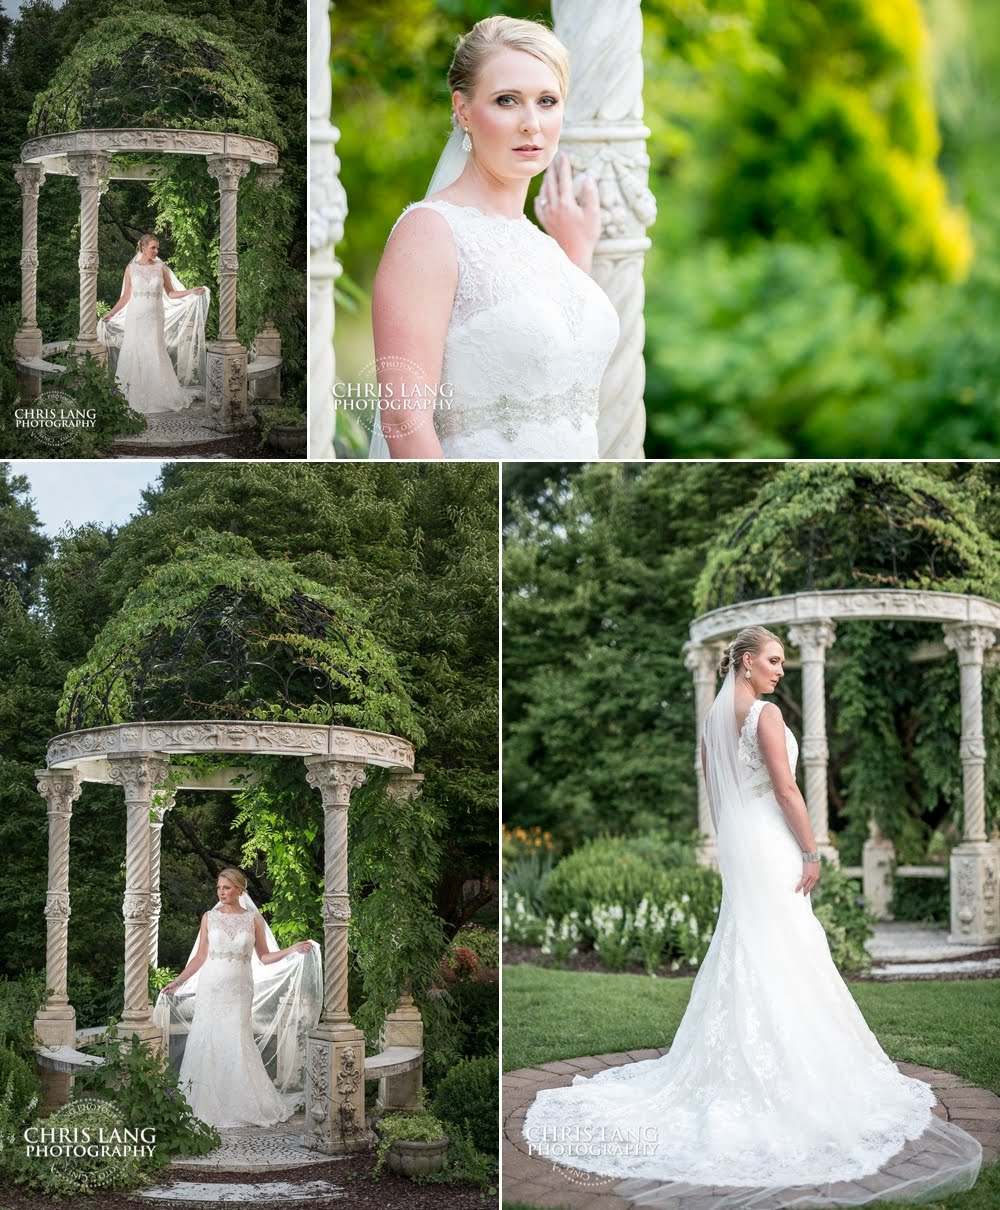 pictures of bride in the garden at the arboretum in wilmington NC - Garden Bridal Pictures - Bridal Picture Ideas  -  NC Bridal Photographers